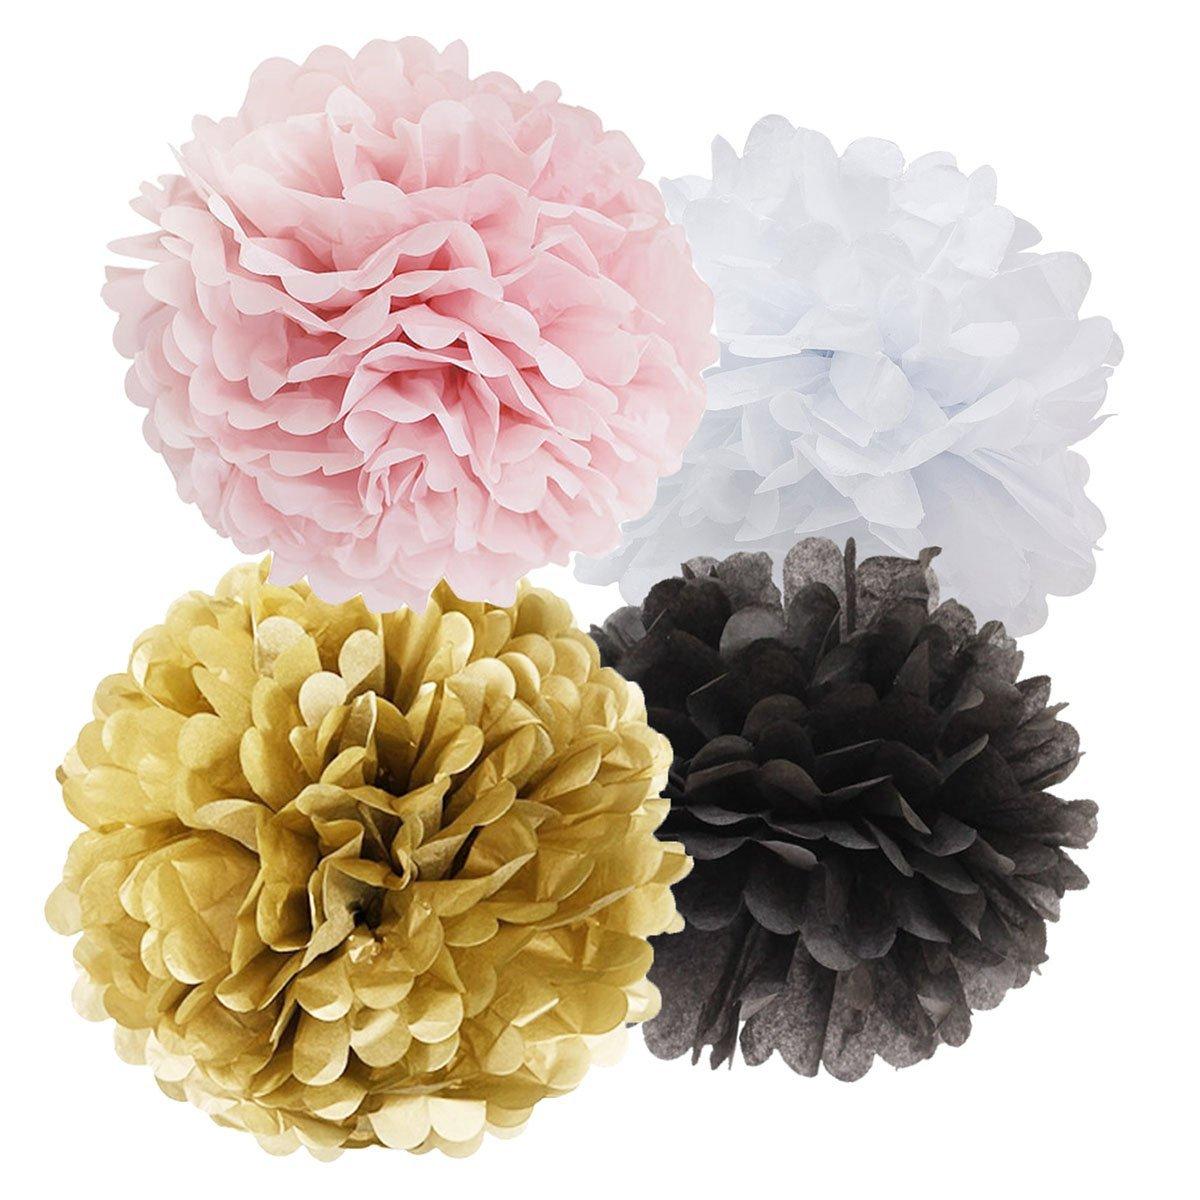 Buy 16pcs Tissue Paper Pom Pom White Pink Gold Black Paper Flower